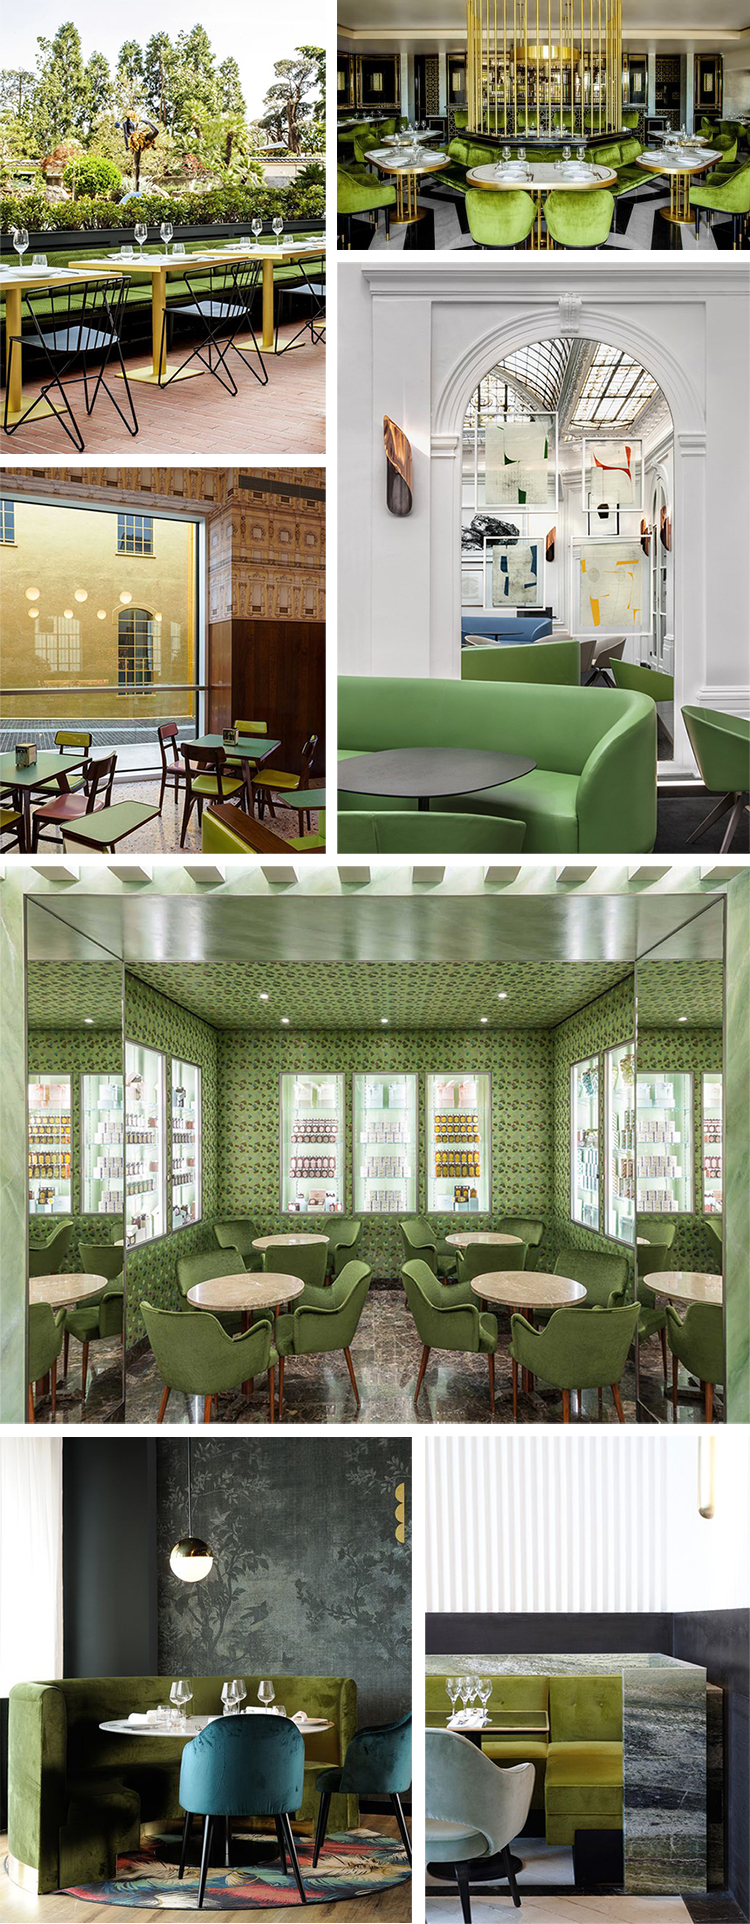 Greenery | PANTONE Color of the Year 2017 | Selected by La Chaise Bleue (lachaisebleue.com)